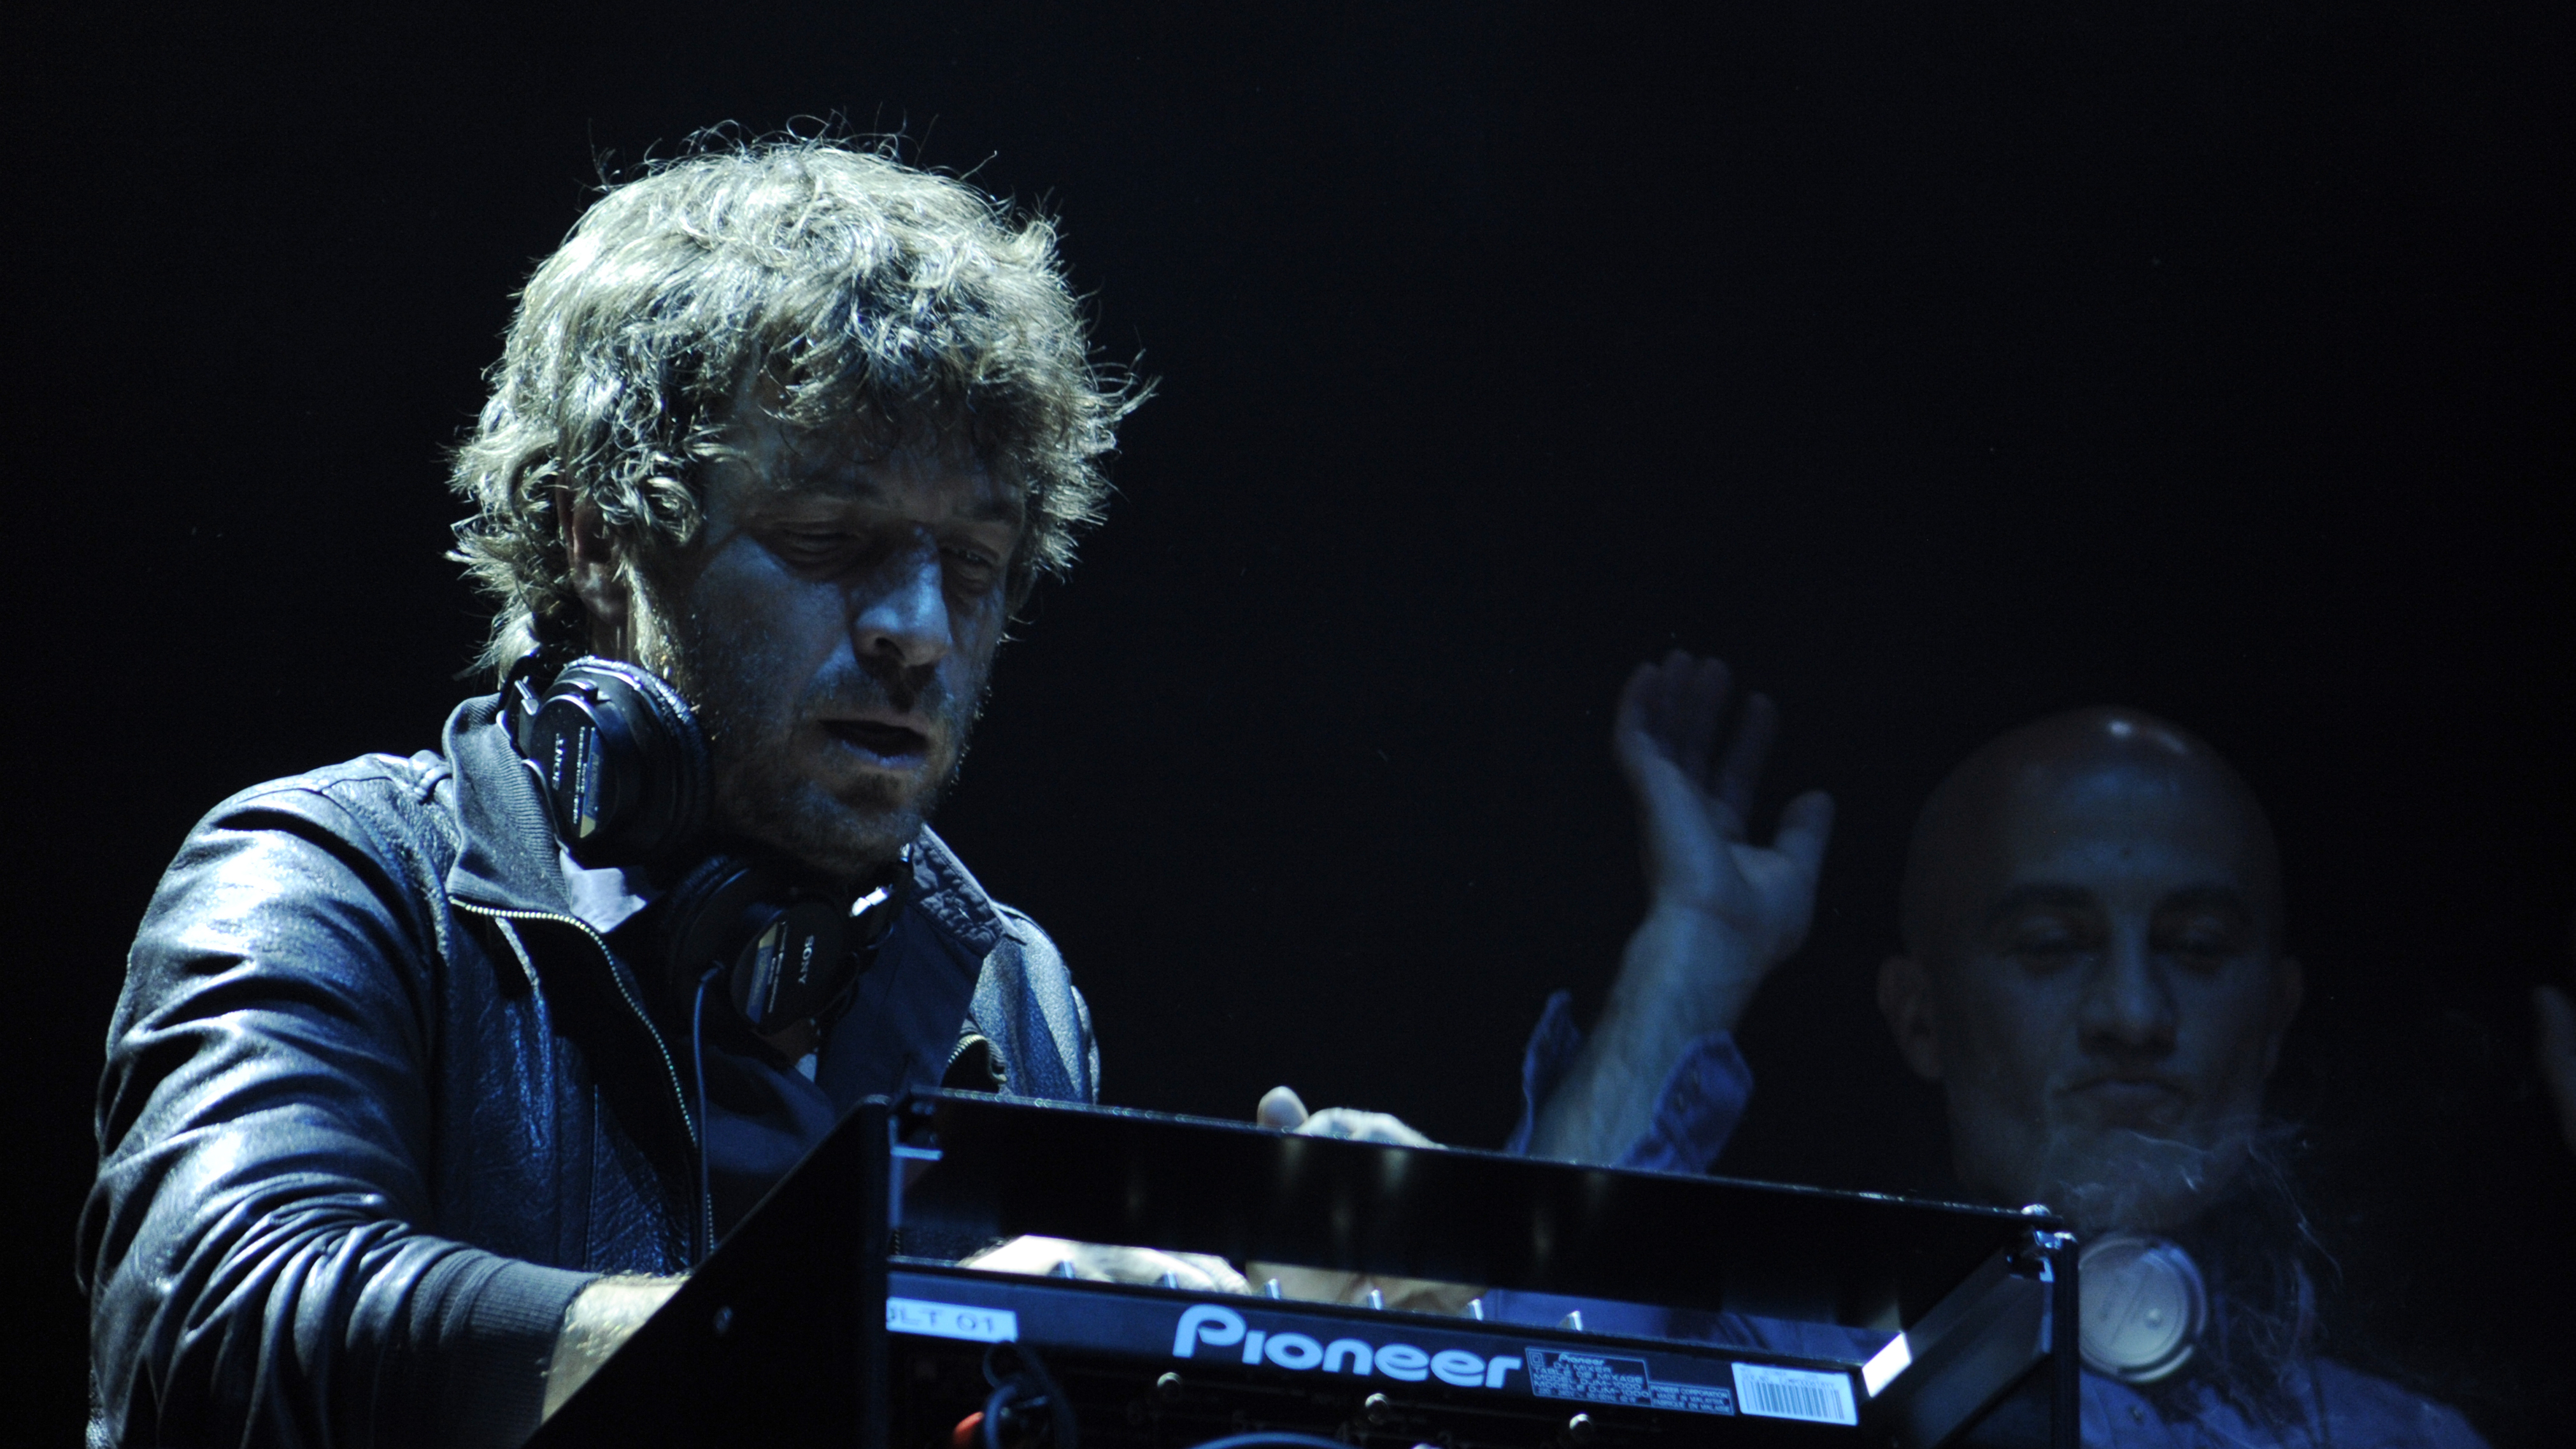 "Philippe ""Zdar"" Cerboneschi, left, and Hubert Blanc-Francard, better known as ""Boom Bass,"" performing as Cassius  on April 24, 2010 in Paris, France. Cerboneschi died Jun. 19, 2019 in an accident that occurred at his home in Paris."